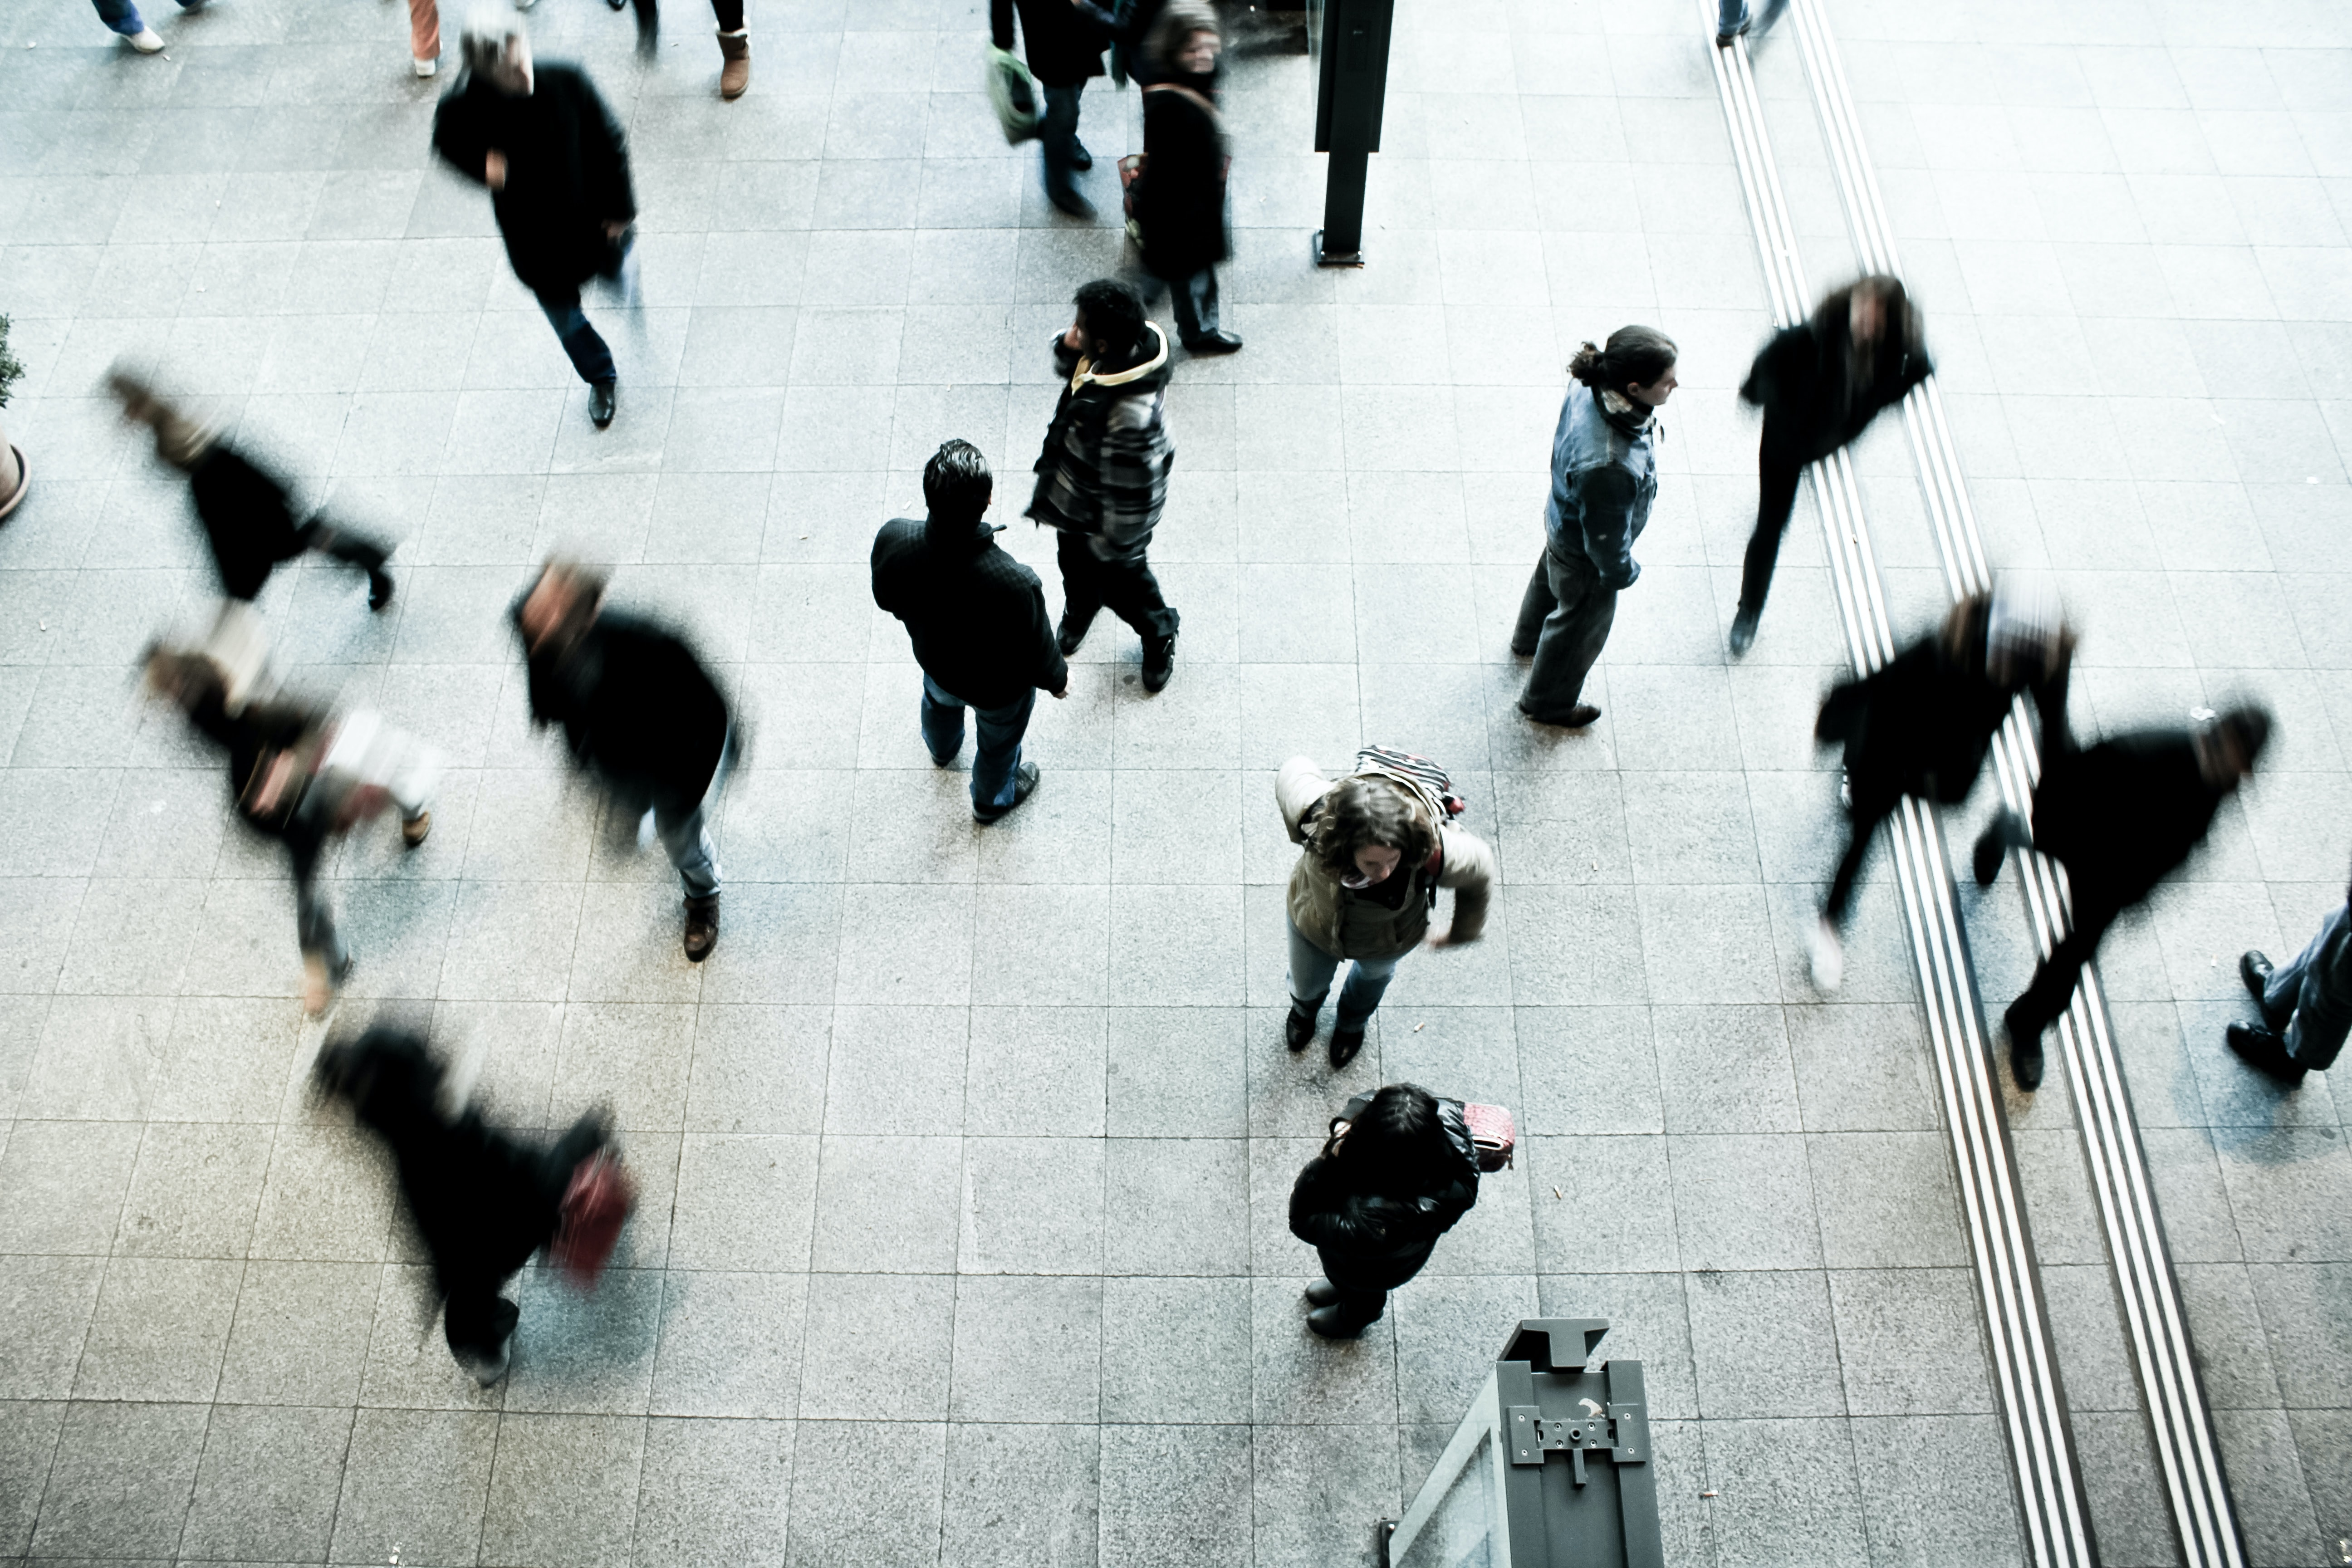 An overhead shot of people walking across a railway station